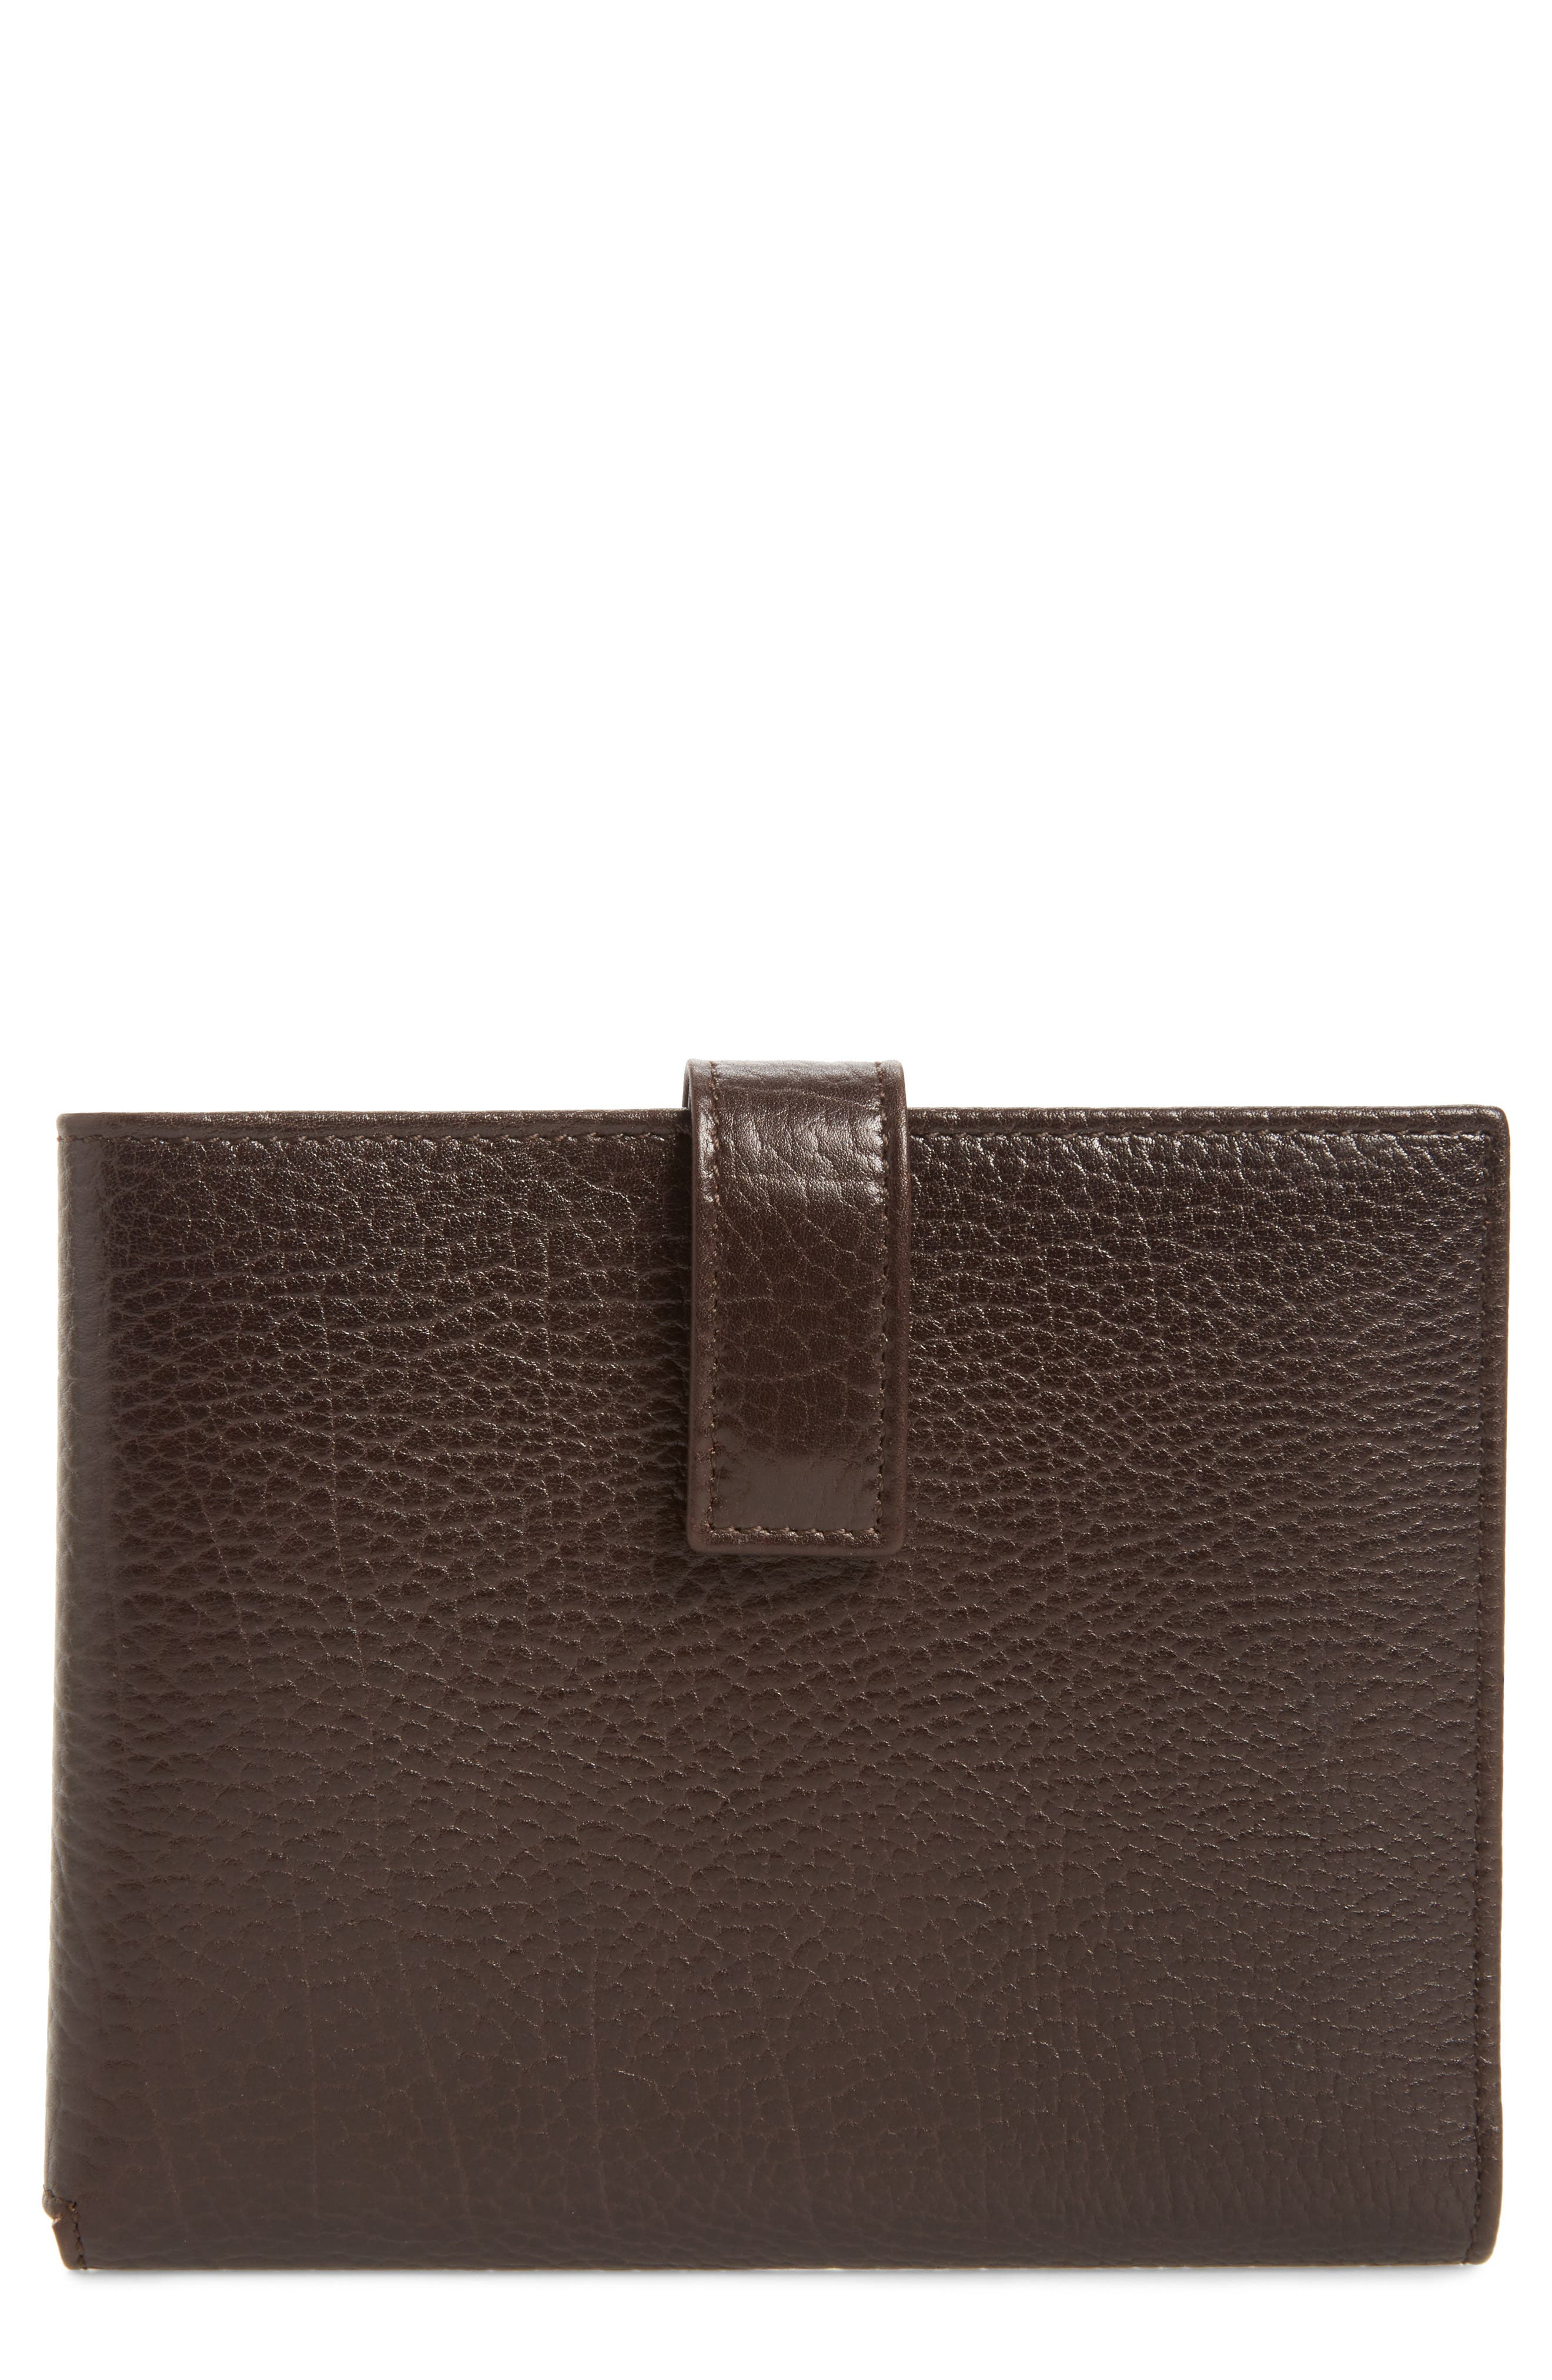 Perseo Leather Travel Wallet,                             Main thumbnail 1, color,                             Brown